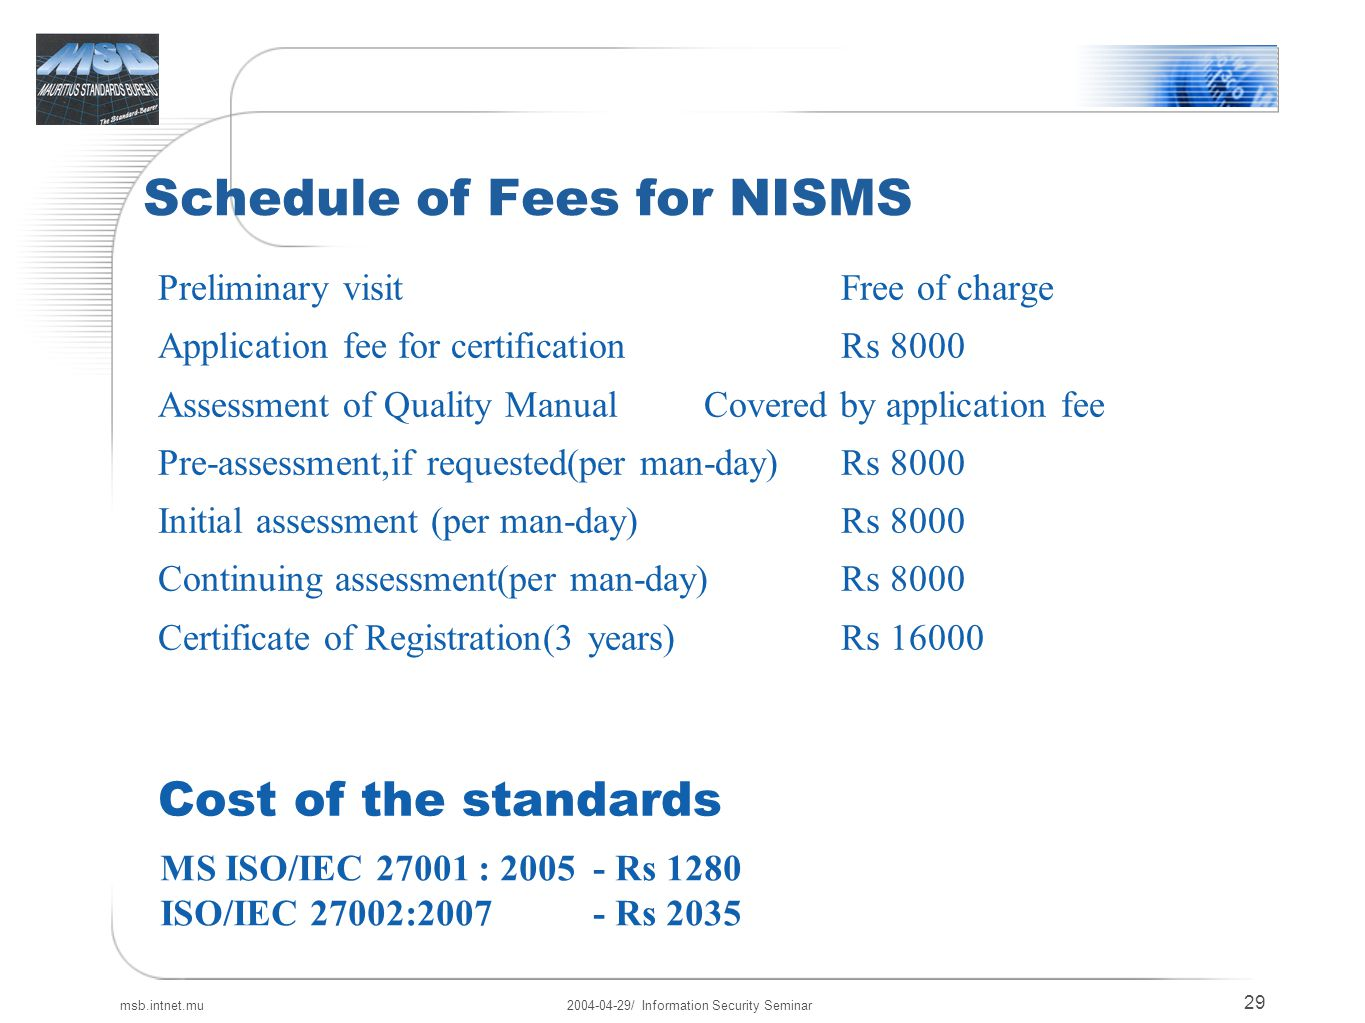 Information security seminar ppt download schedule of fees for nisms xflitez Images